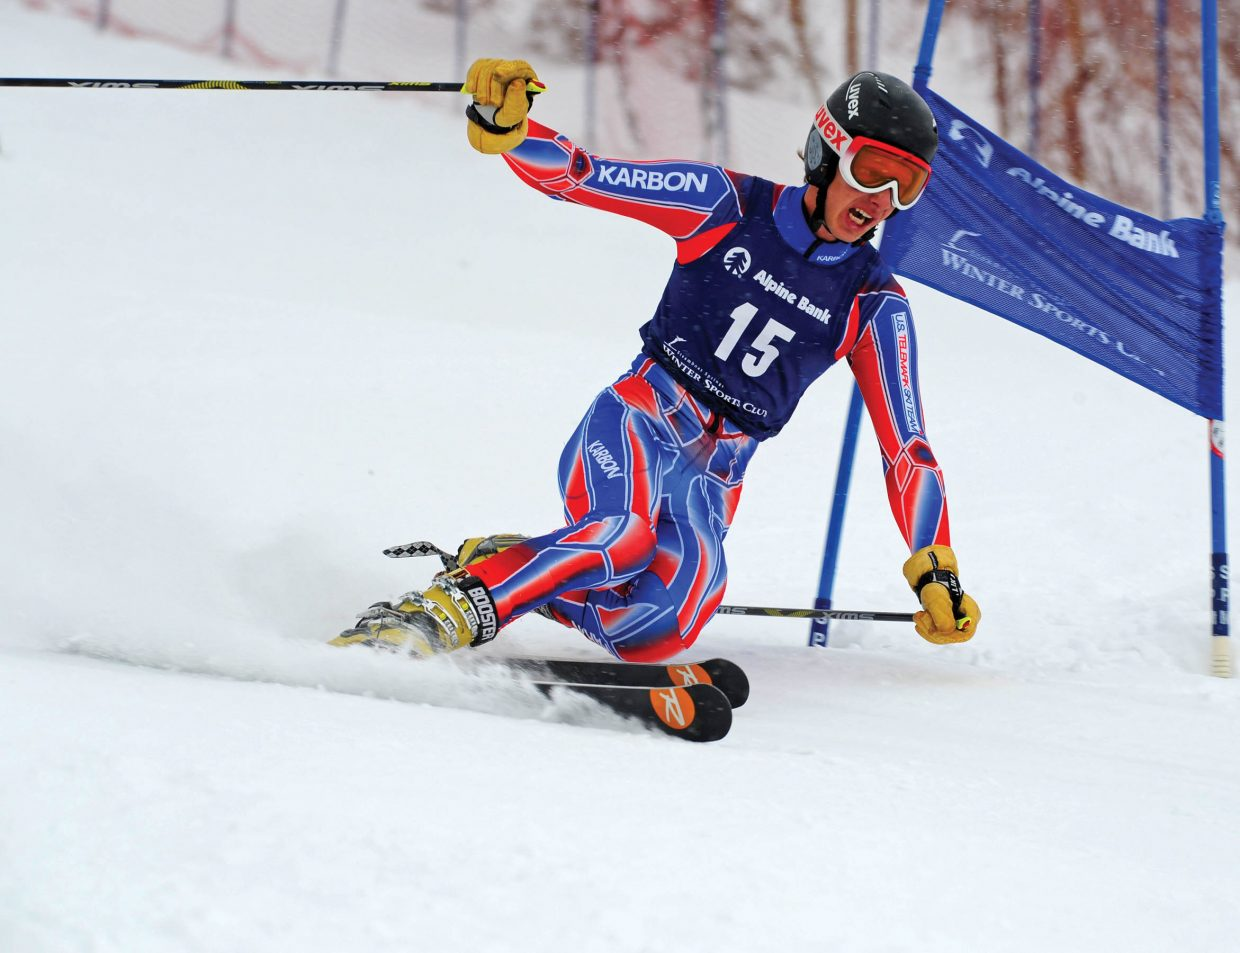 Hometown favorite Jeffrey Gay makes his way down the Sitz/See Me race course Monday during the first day of the Telemark World Cup in Steamboat Springs. Gay, who was representing the United States, placed 17th in the final results.